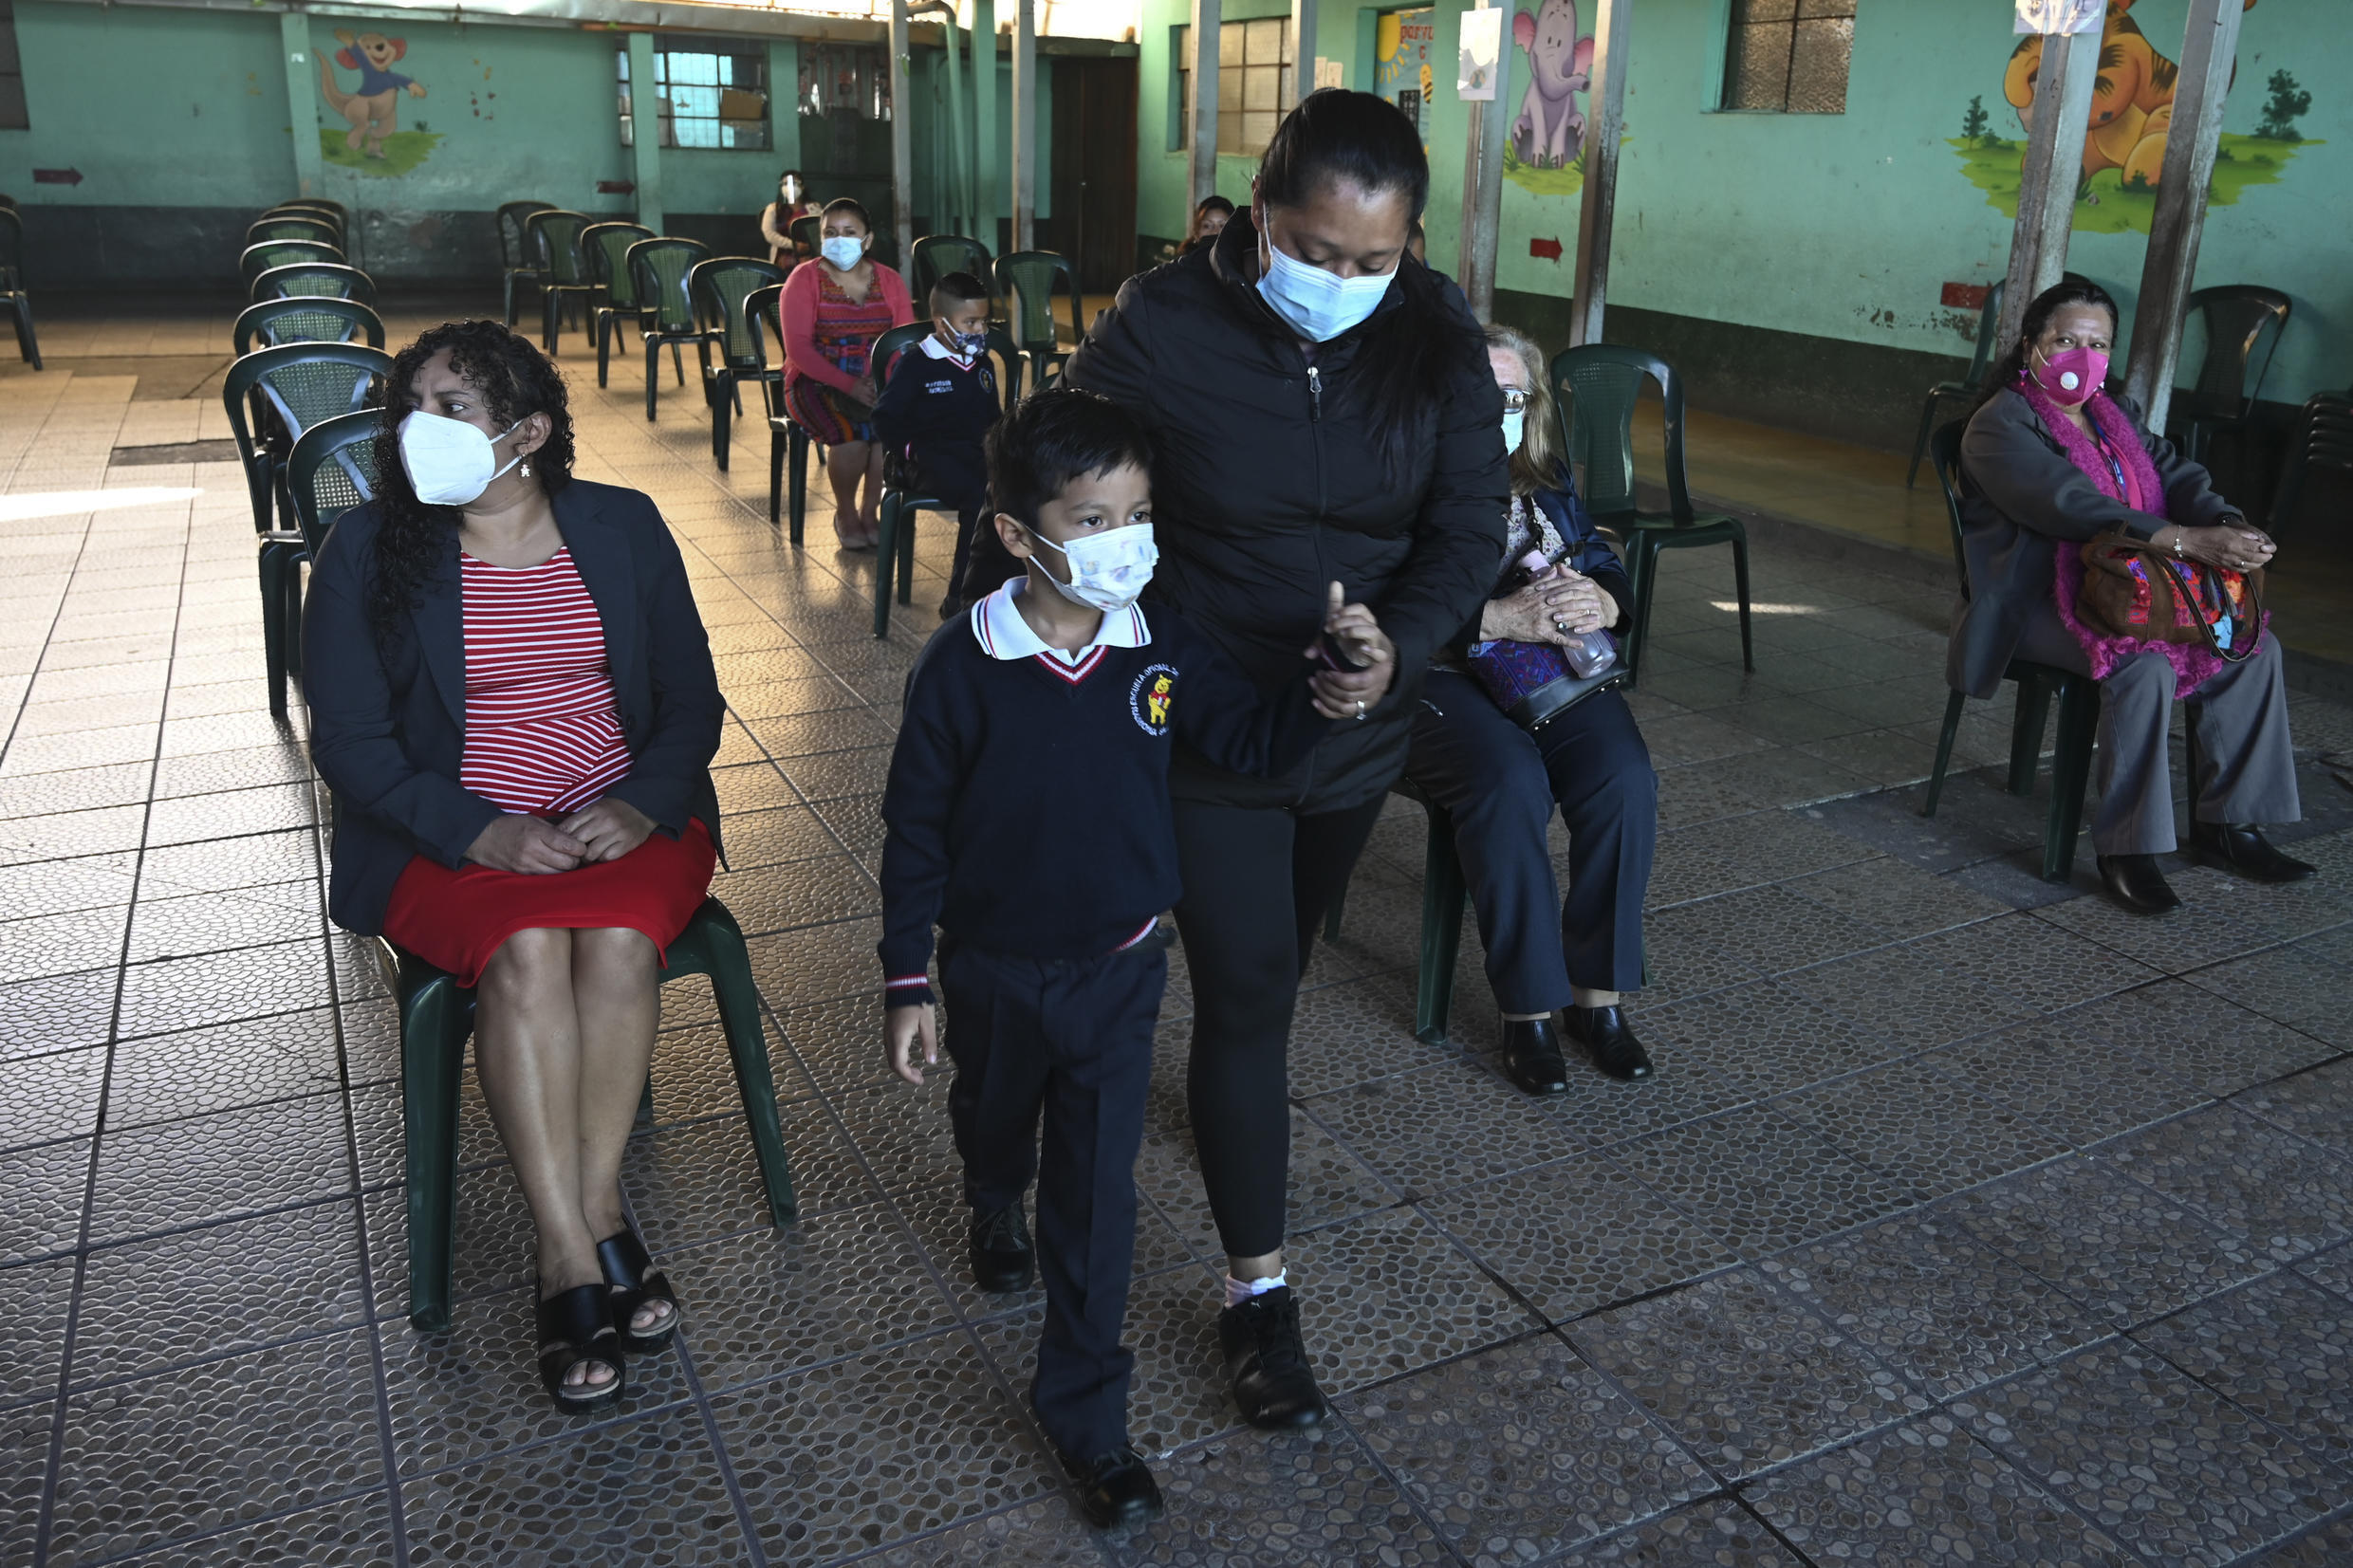 A child wears a mask as a precaution against the contagion of covid-19, while attending the start of classes ceremony at the Ramona Gil School in Chimaltenango, 60 kilometers west of Guatemala City, on February 22, 2021